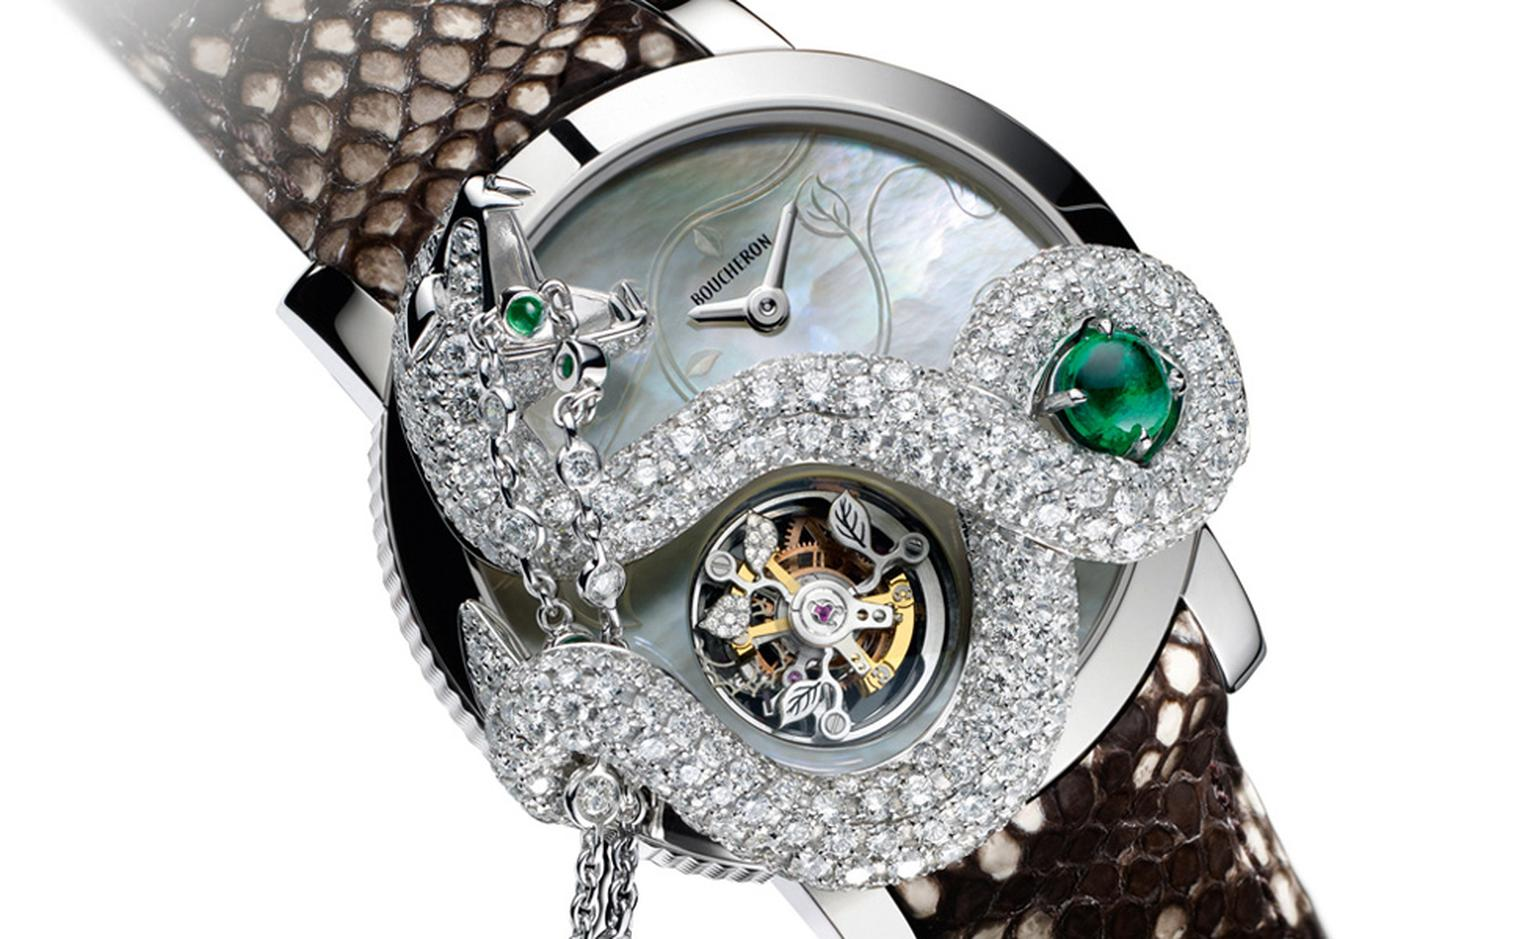 Boucheron's Serpent Tourbillon watch shows both the watchmaking skills and extravagant creativity of this jeweller.